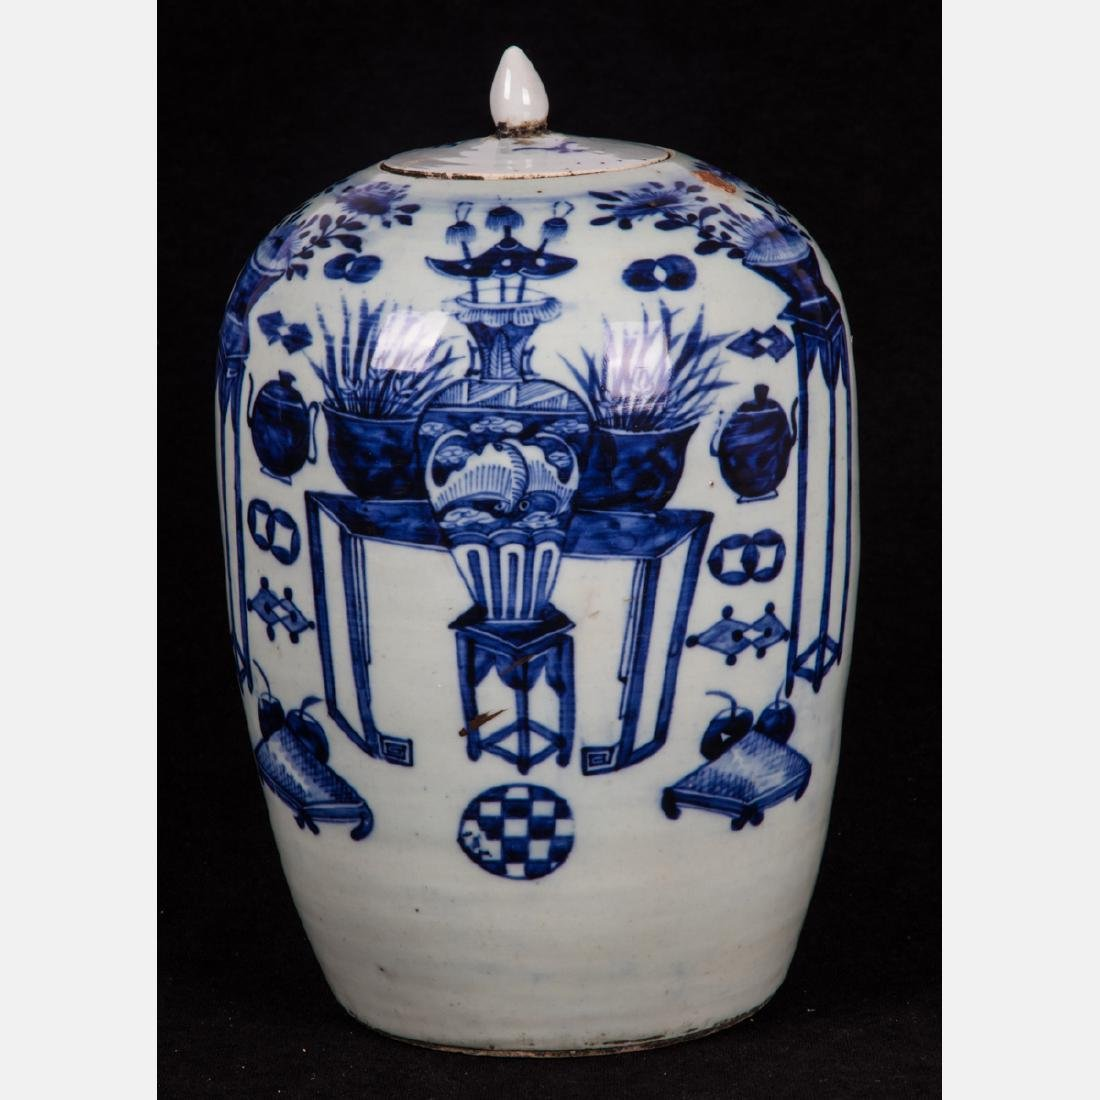 A Chinese Blue and White Porcelain Lidded Jar, 19th